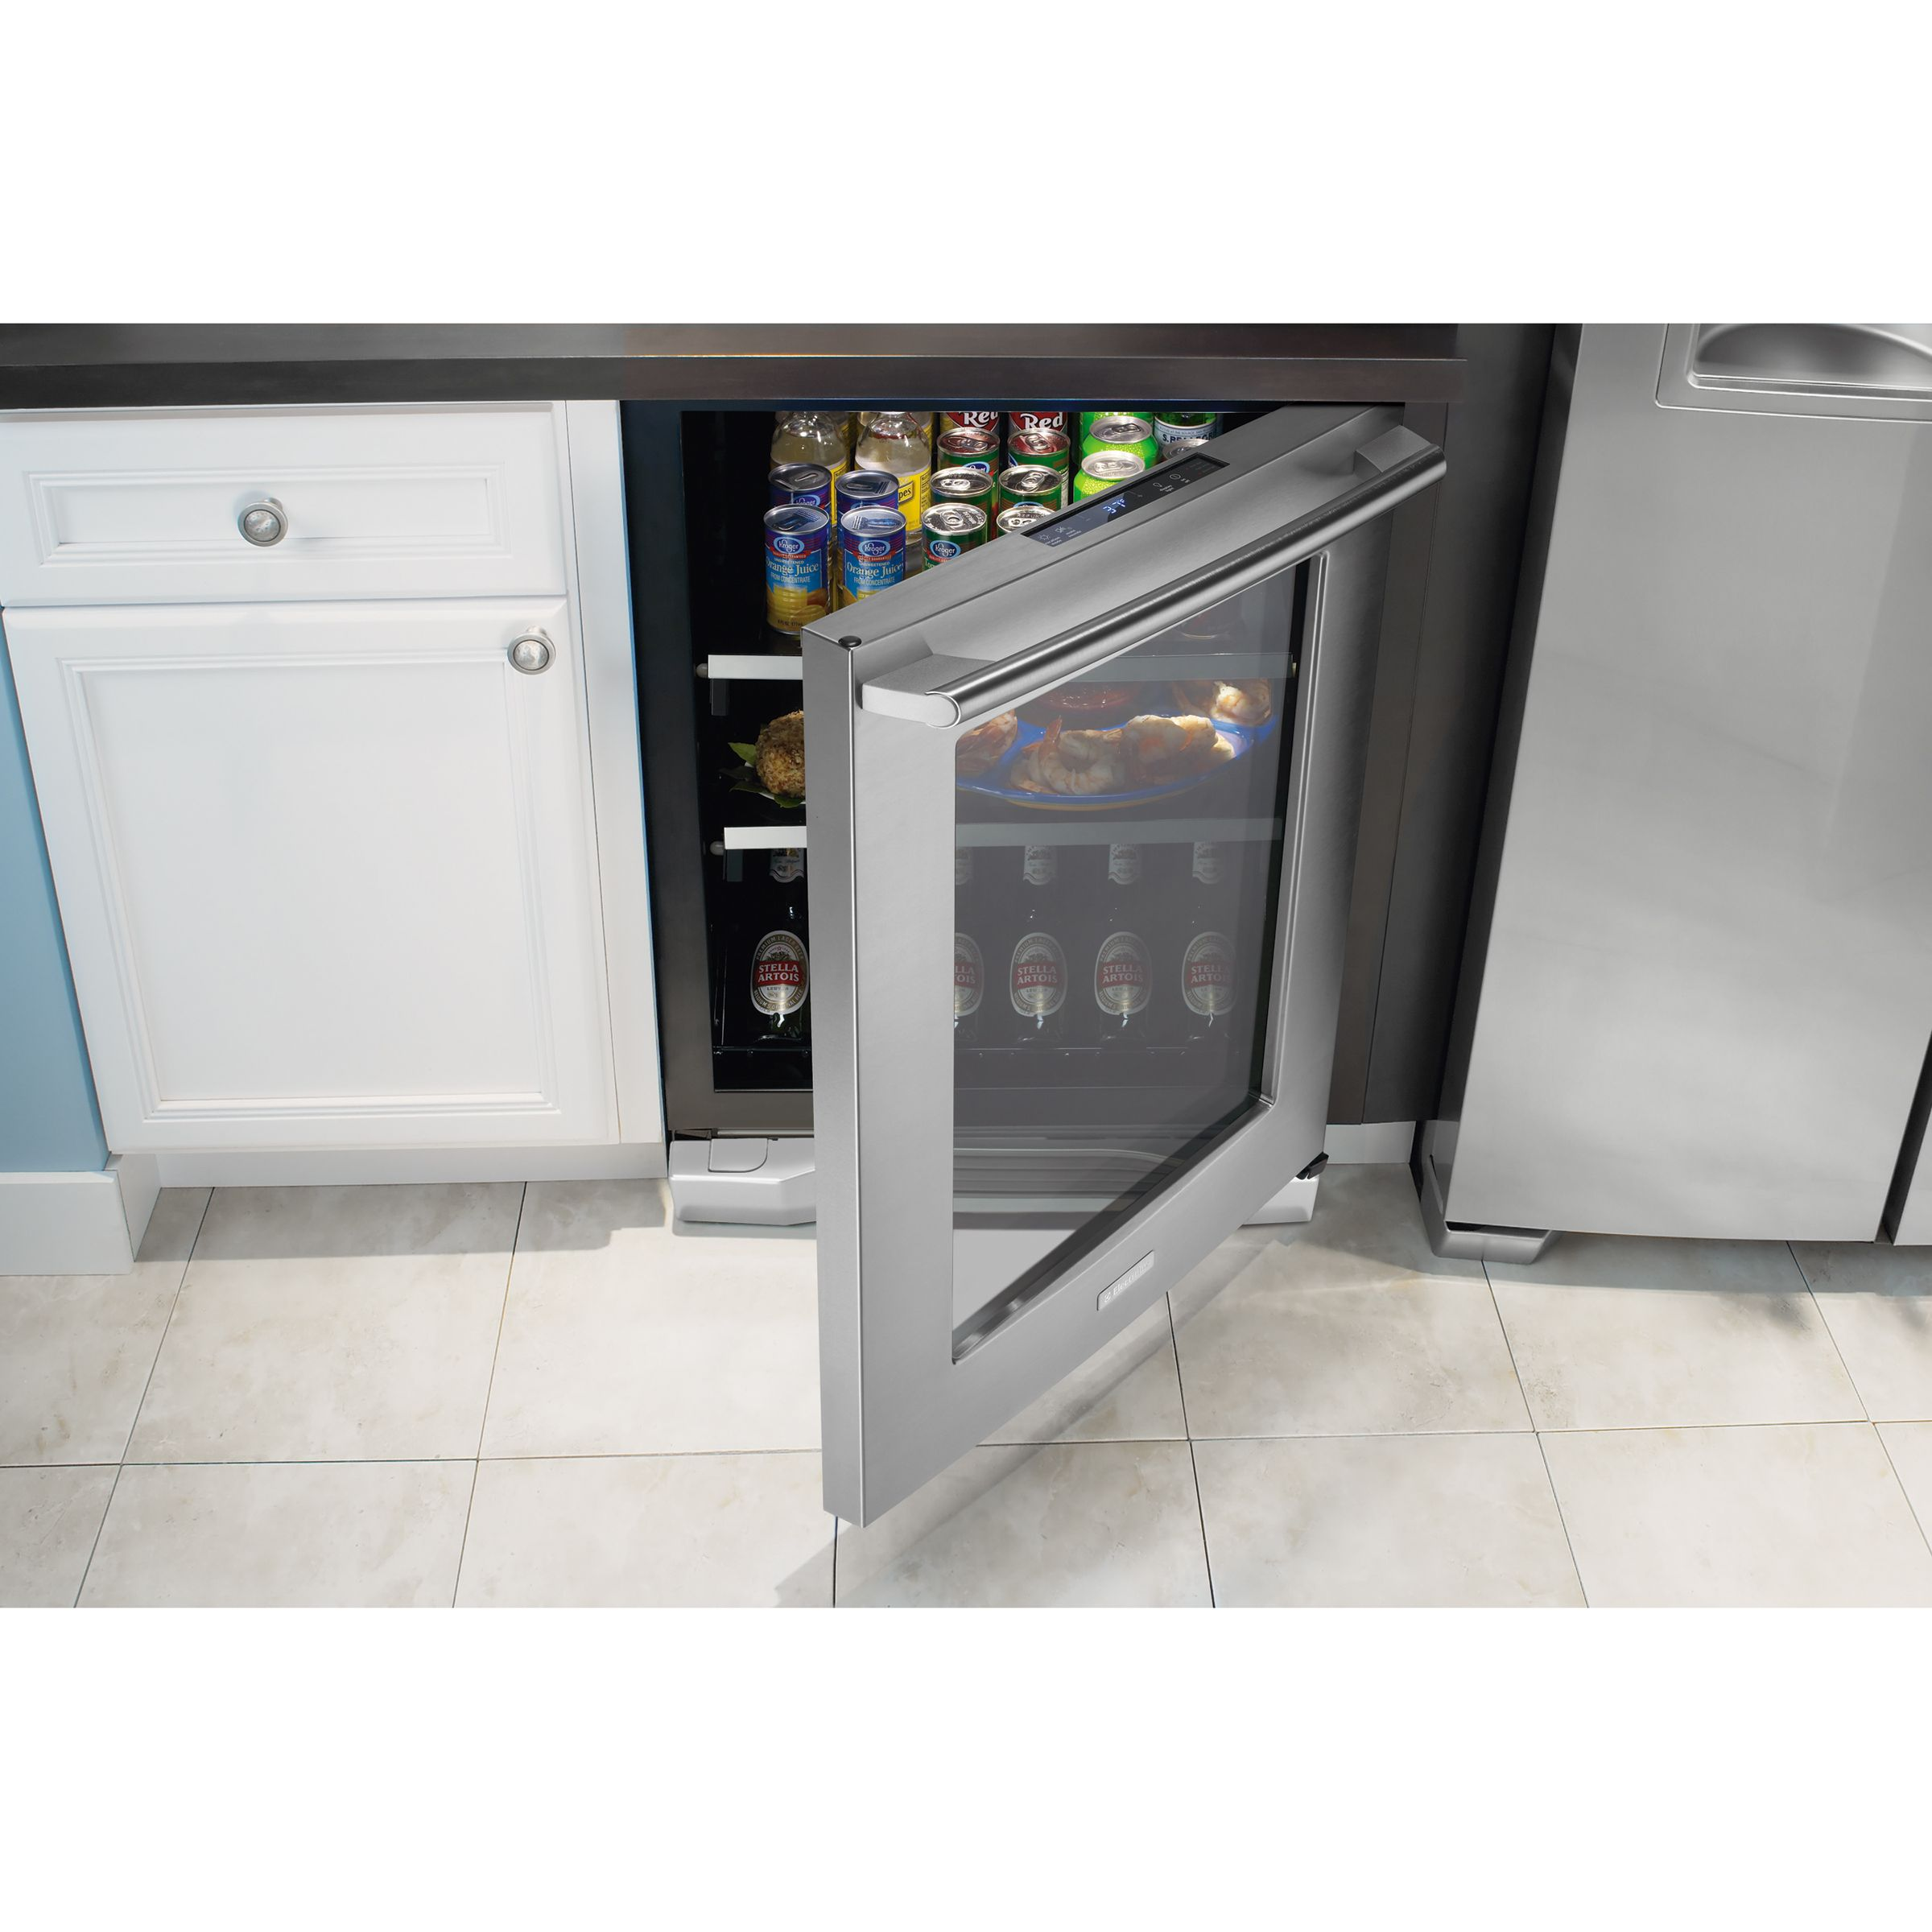 "Electrolux 24"" Undercounter Beverage Center - Stainless Steel"